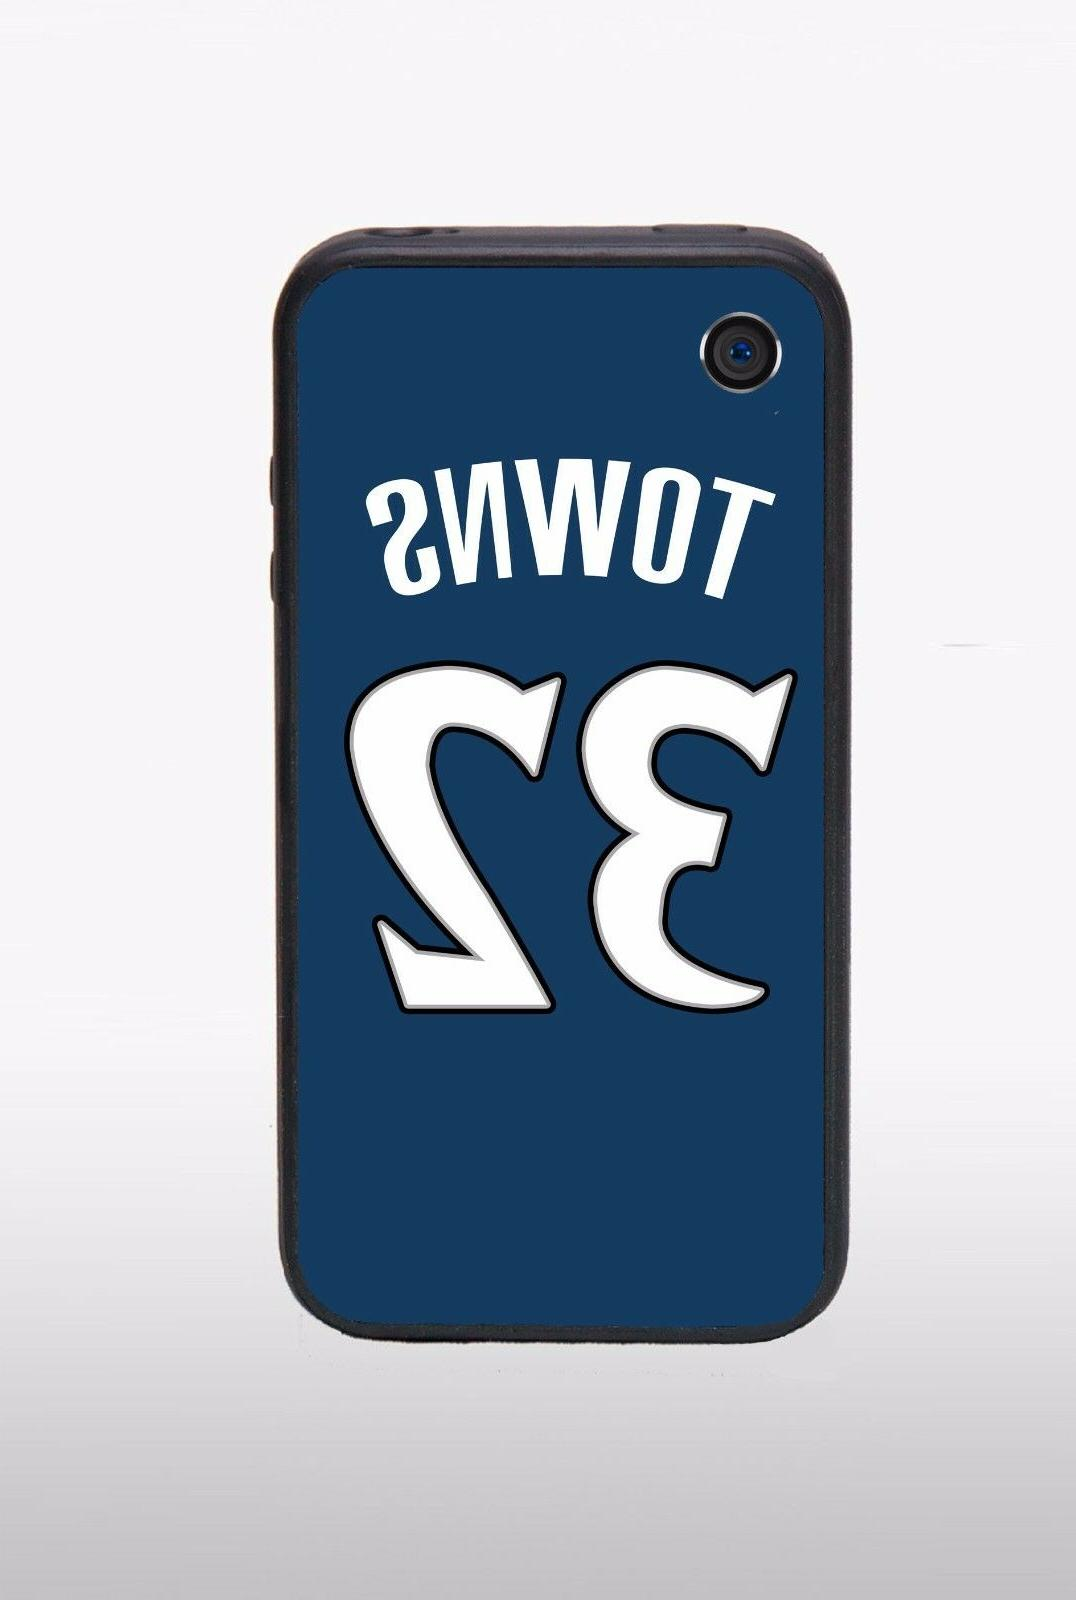 karl anthony towns minnesota timberwolves iphone case